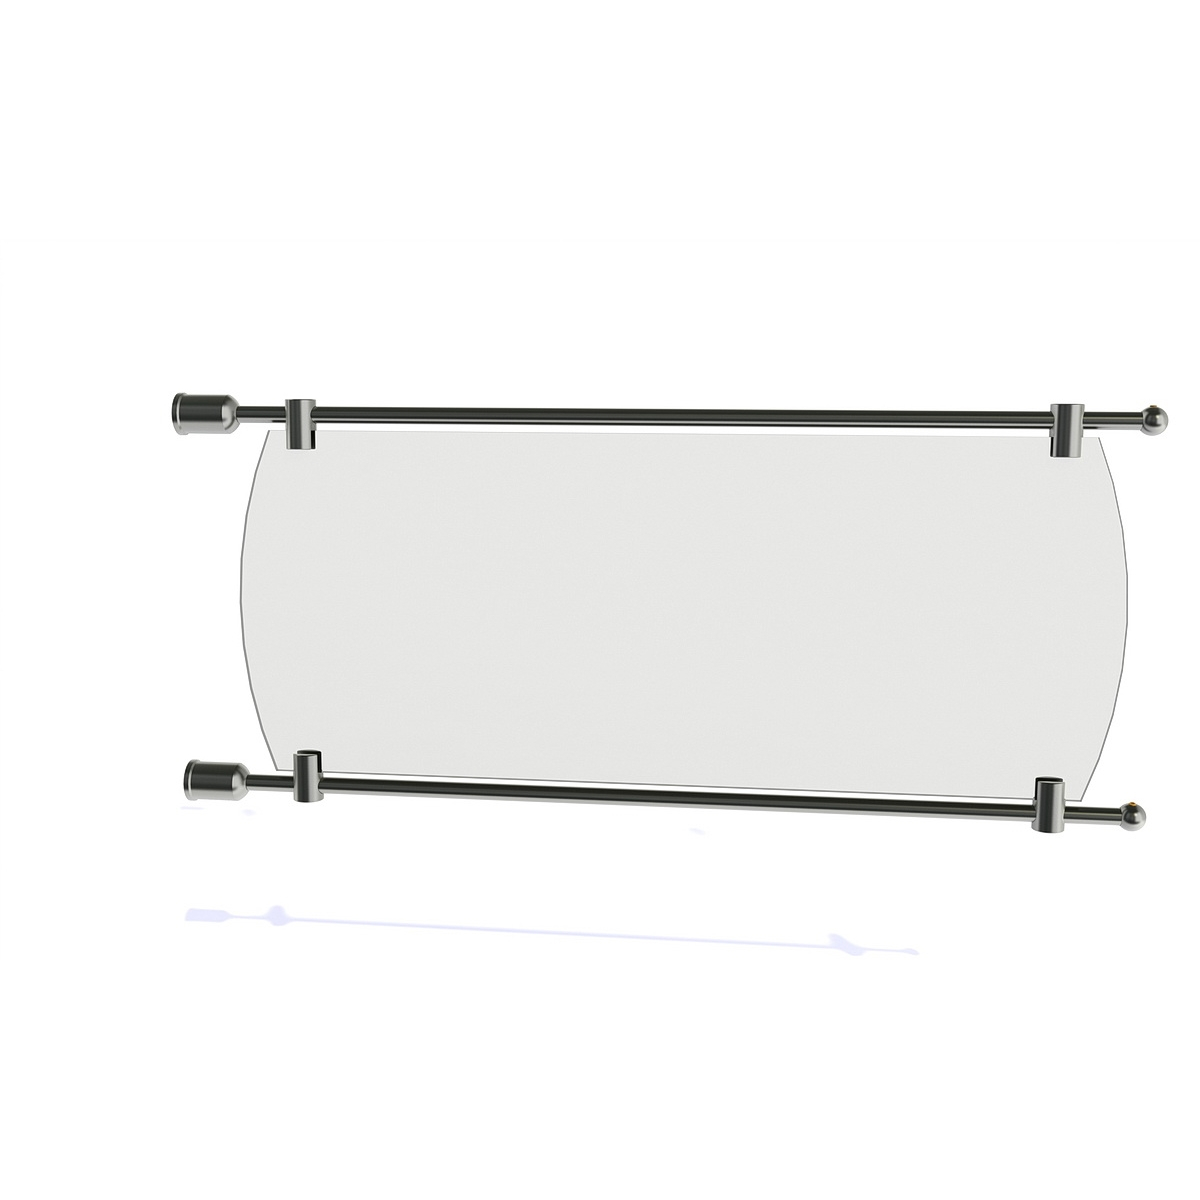 3/8'' Diameter Rod Projecting Sign, Aluminum Clear Anodized, 21 13/16'' including the wall mounts. Material thickness up to 5/16''